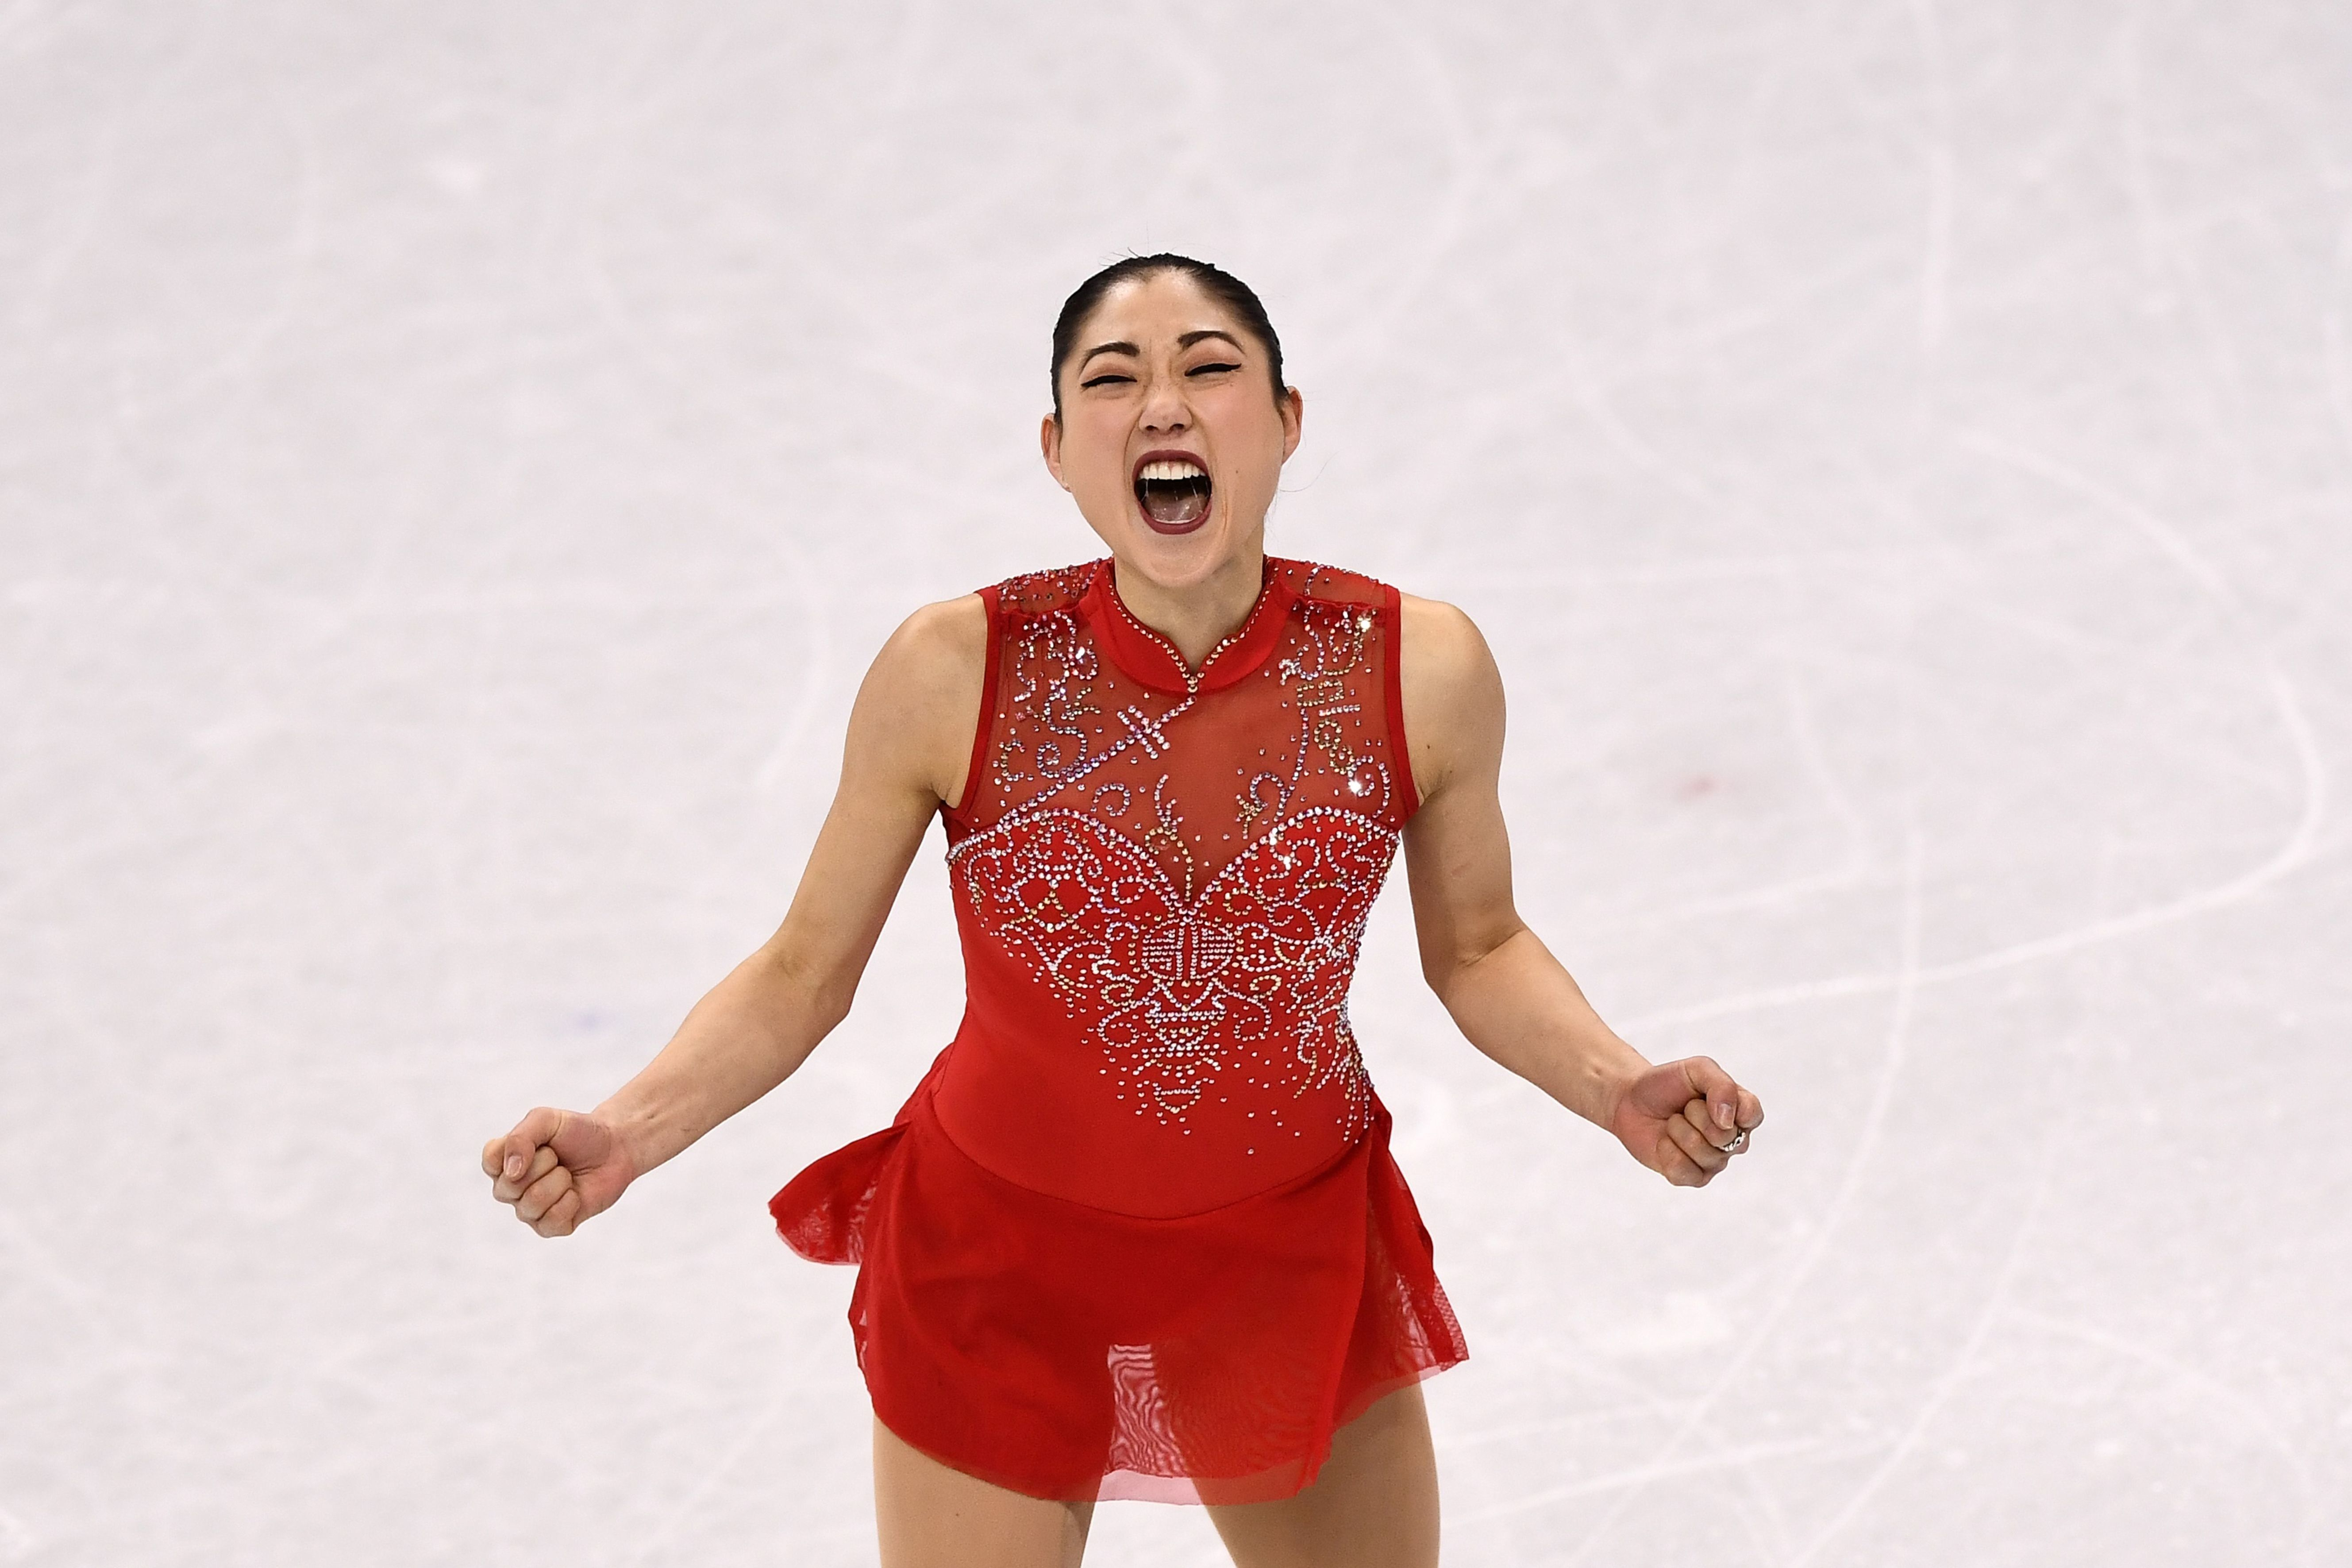 Mirai Nagasugives herself a well-deserved cheer afterher performance in the figure skating team event at the 2018